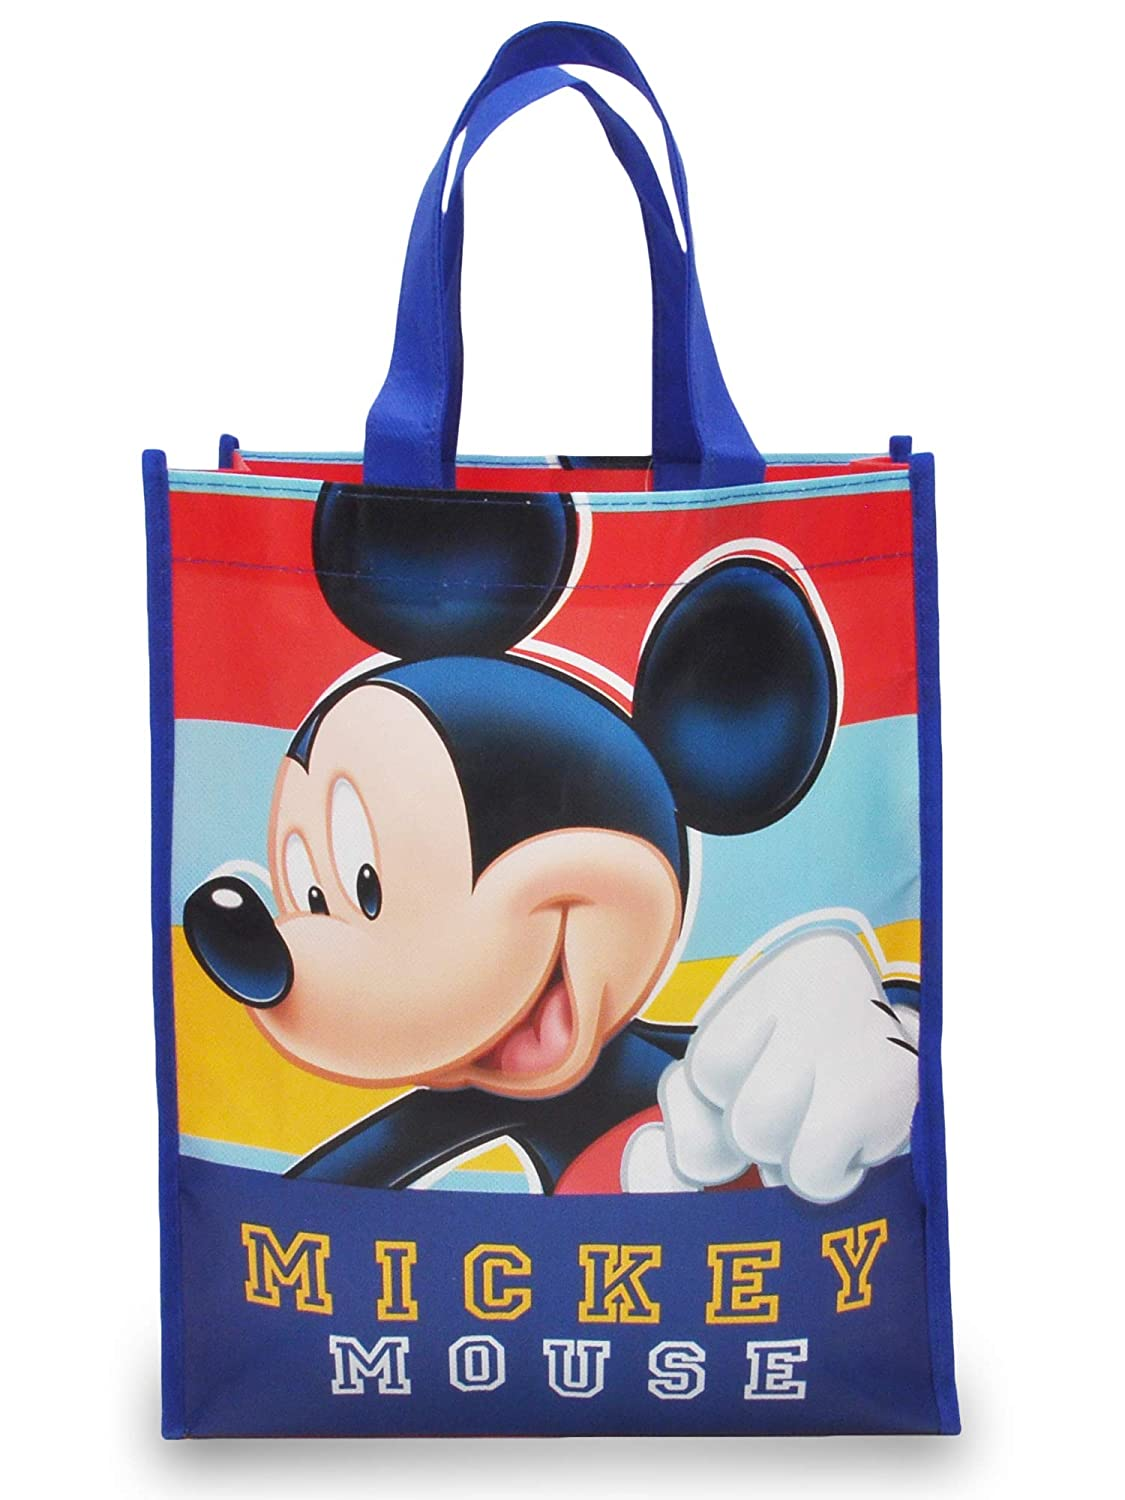 Disney 11 Plush Mickey Mouse Friends 2-Pack in Gift Bag Donald Duck /& Goofy